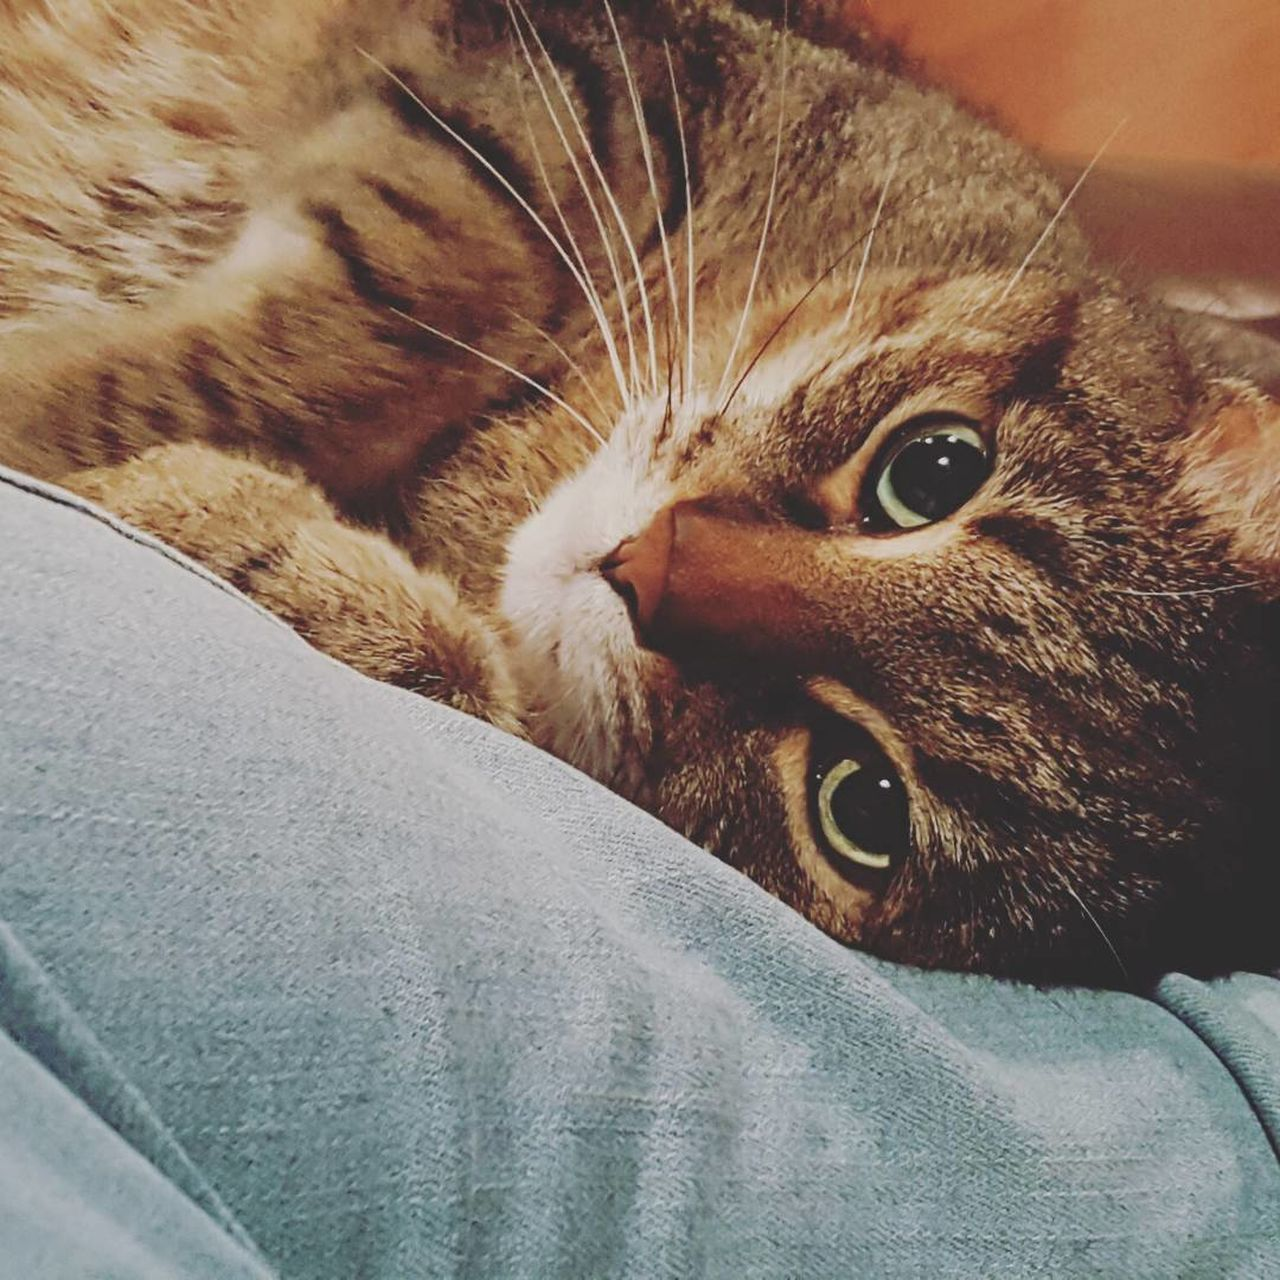 domestic cat, pets, one animal, domestic animals, animal themes, mammal, feline, cat, indoors, whisker, portrait, animal head, no people, looking at camera, close-up, home interior, day